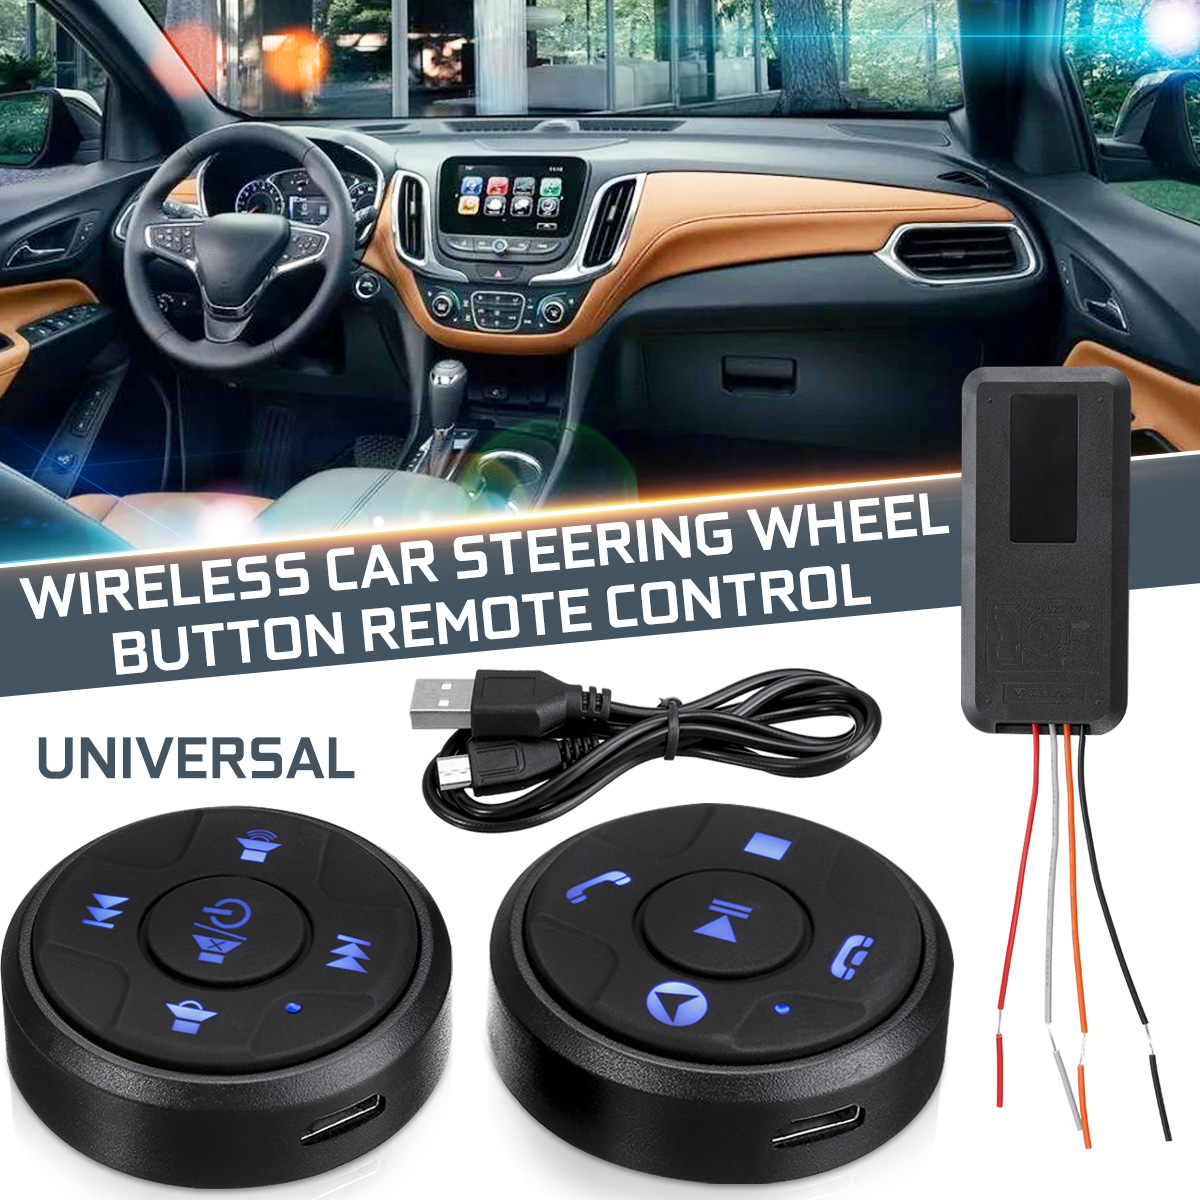 2pcs Universal Wireless Car Steering Wheel Button Remote Control With Night Light For Car Stereo Dvd Gps Buy Online At Best Prices In Myanmar Shop Com Mm